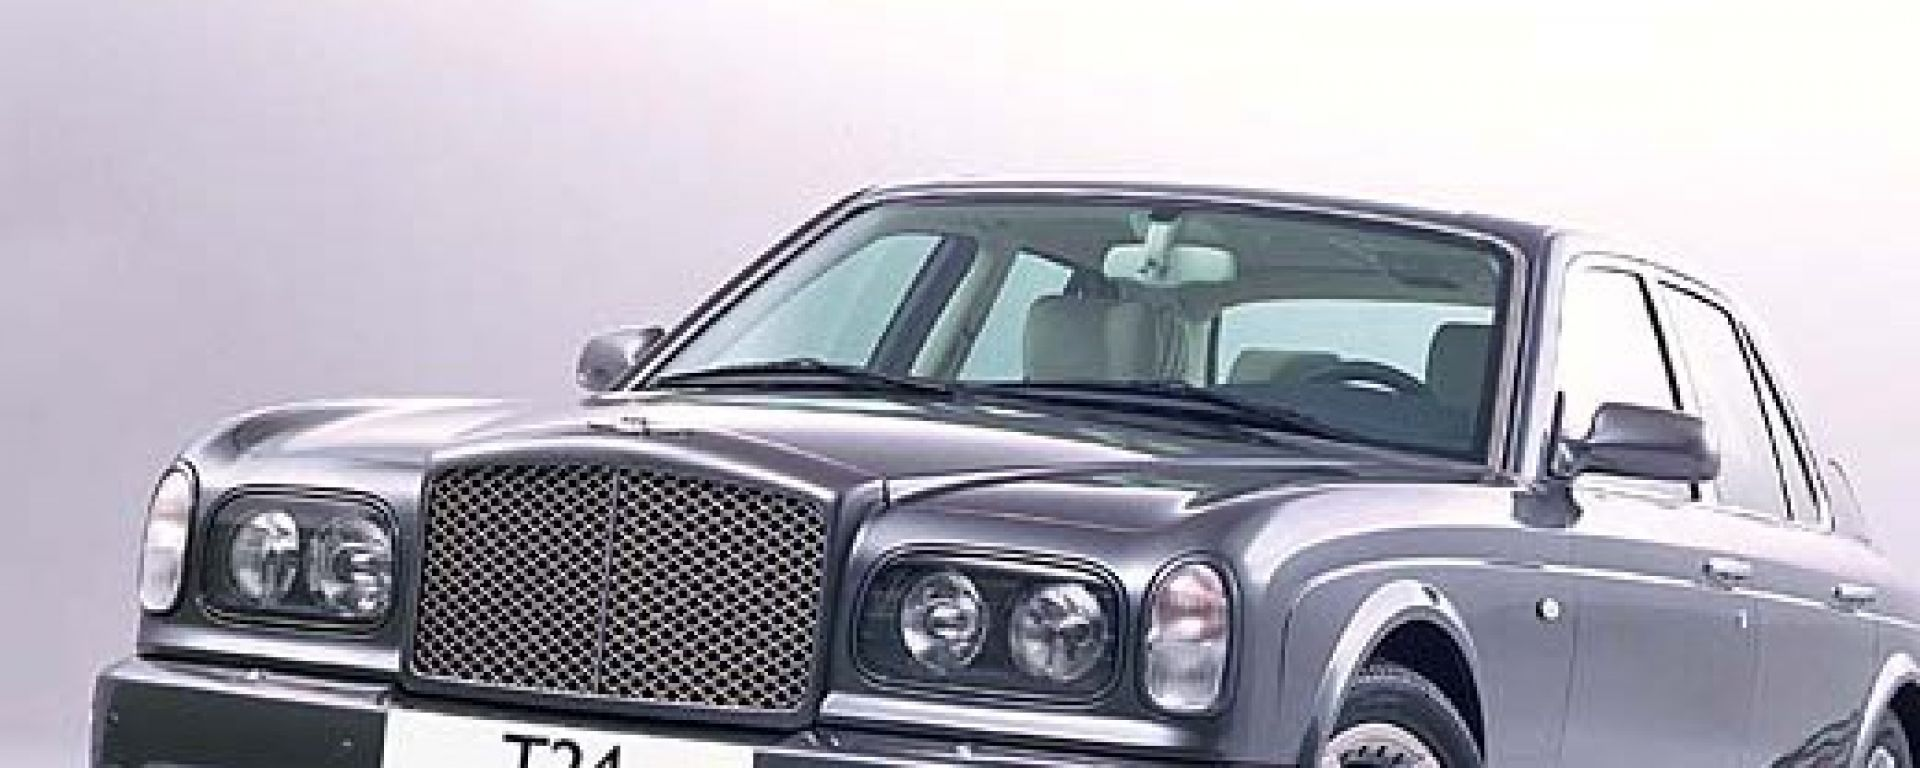 Bentley Arnage T-24